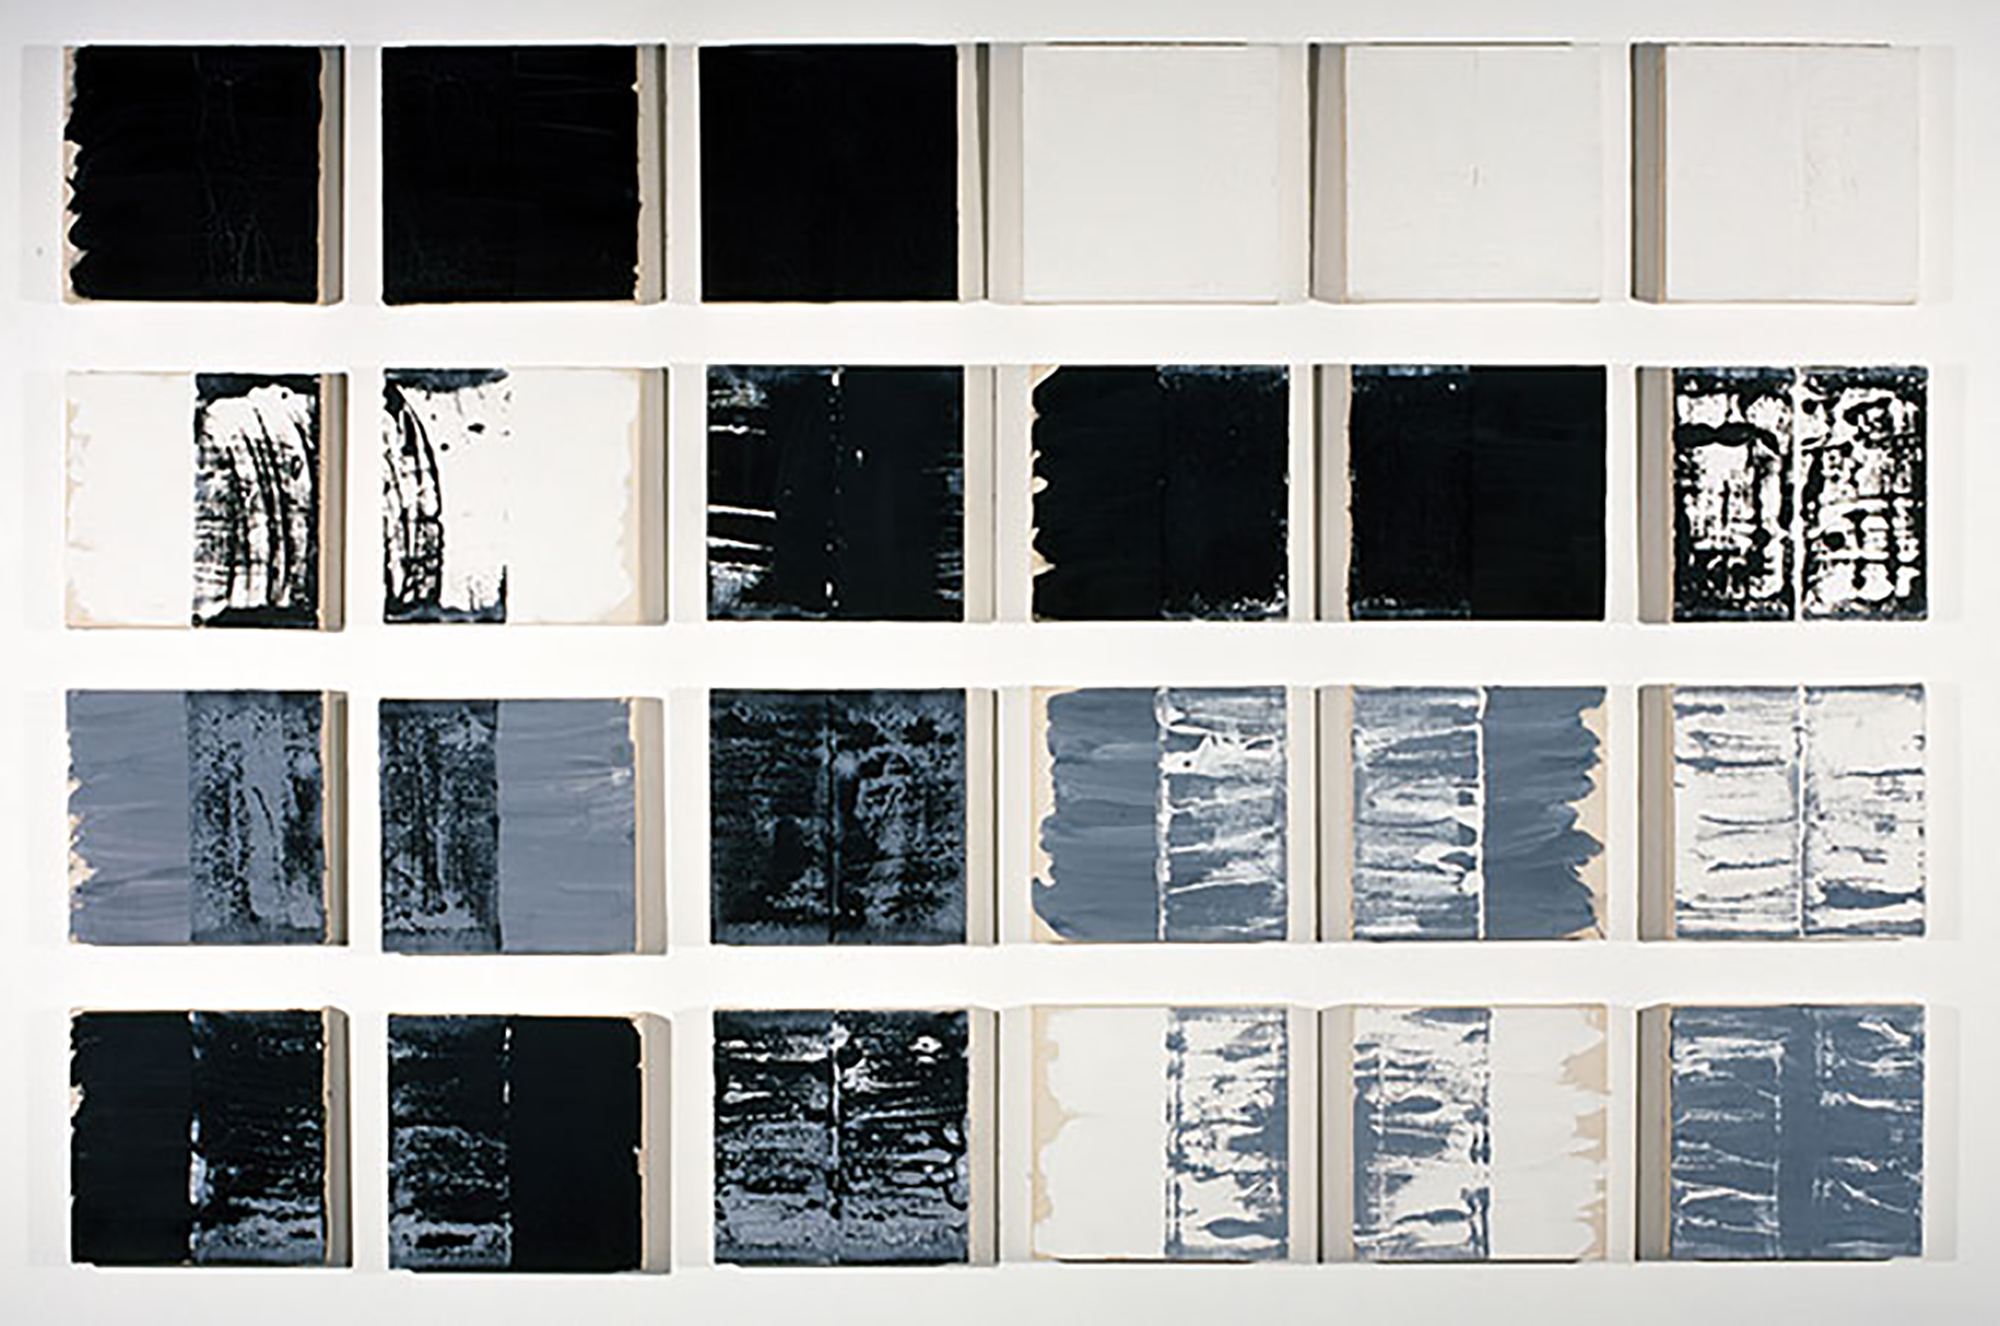 Painting of 24 squares with shades of black, blue/black, blue/white, blue/black